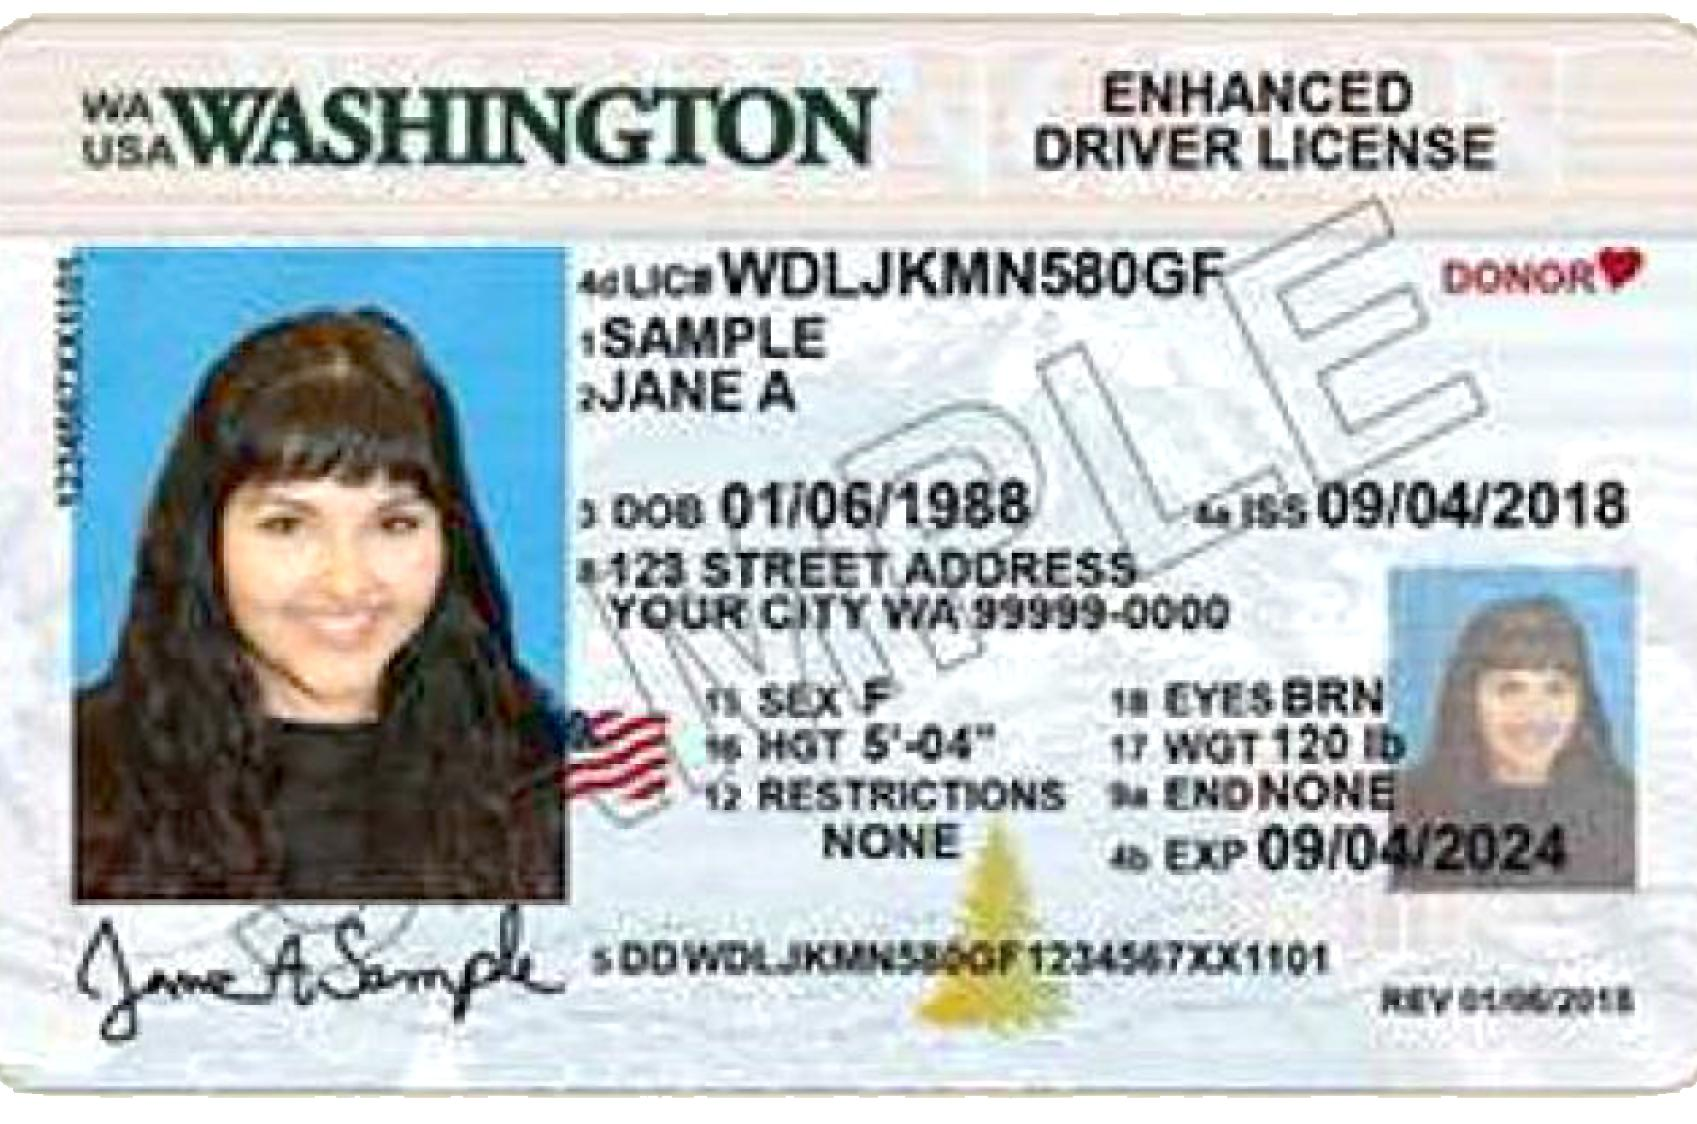 To Cards Licenses Change Id Driver's Washington On Spokesman-review July 1 The